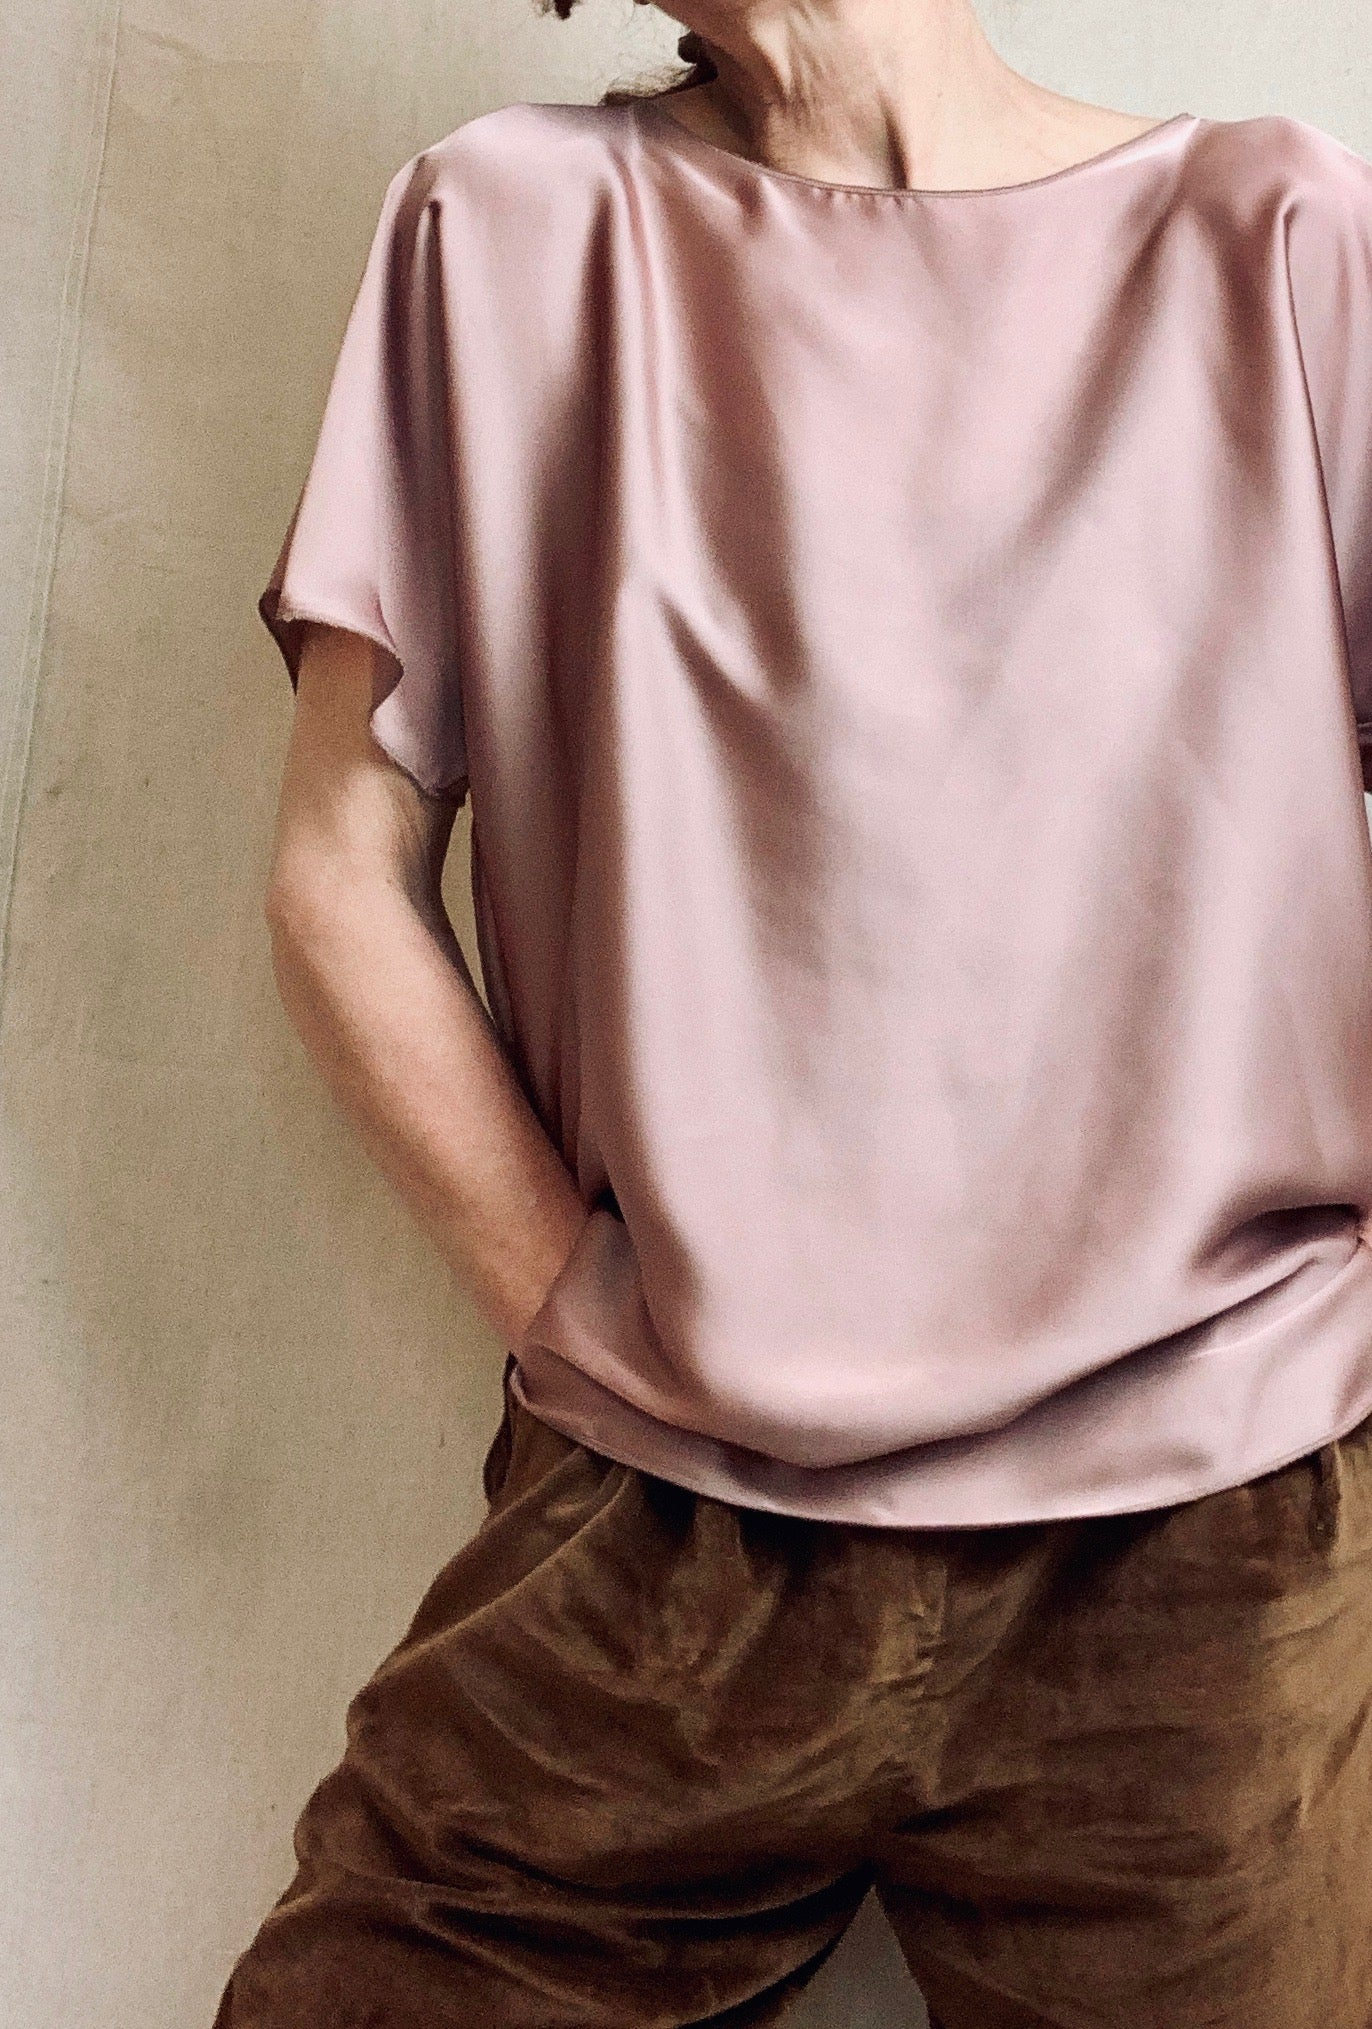 Anderst Jesse Top in Blush